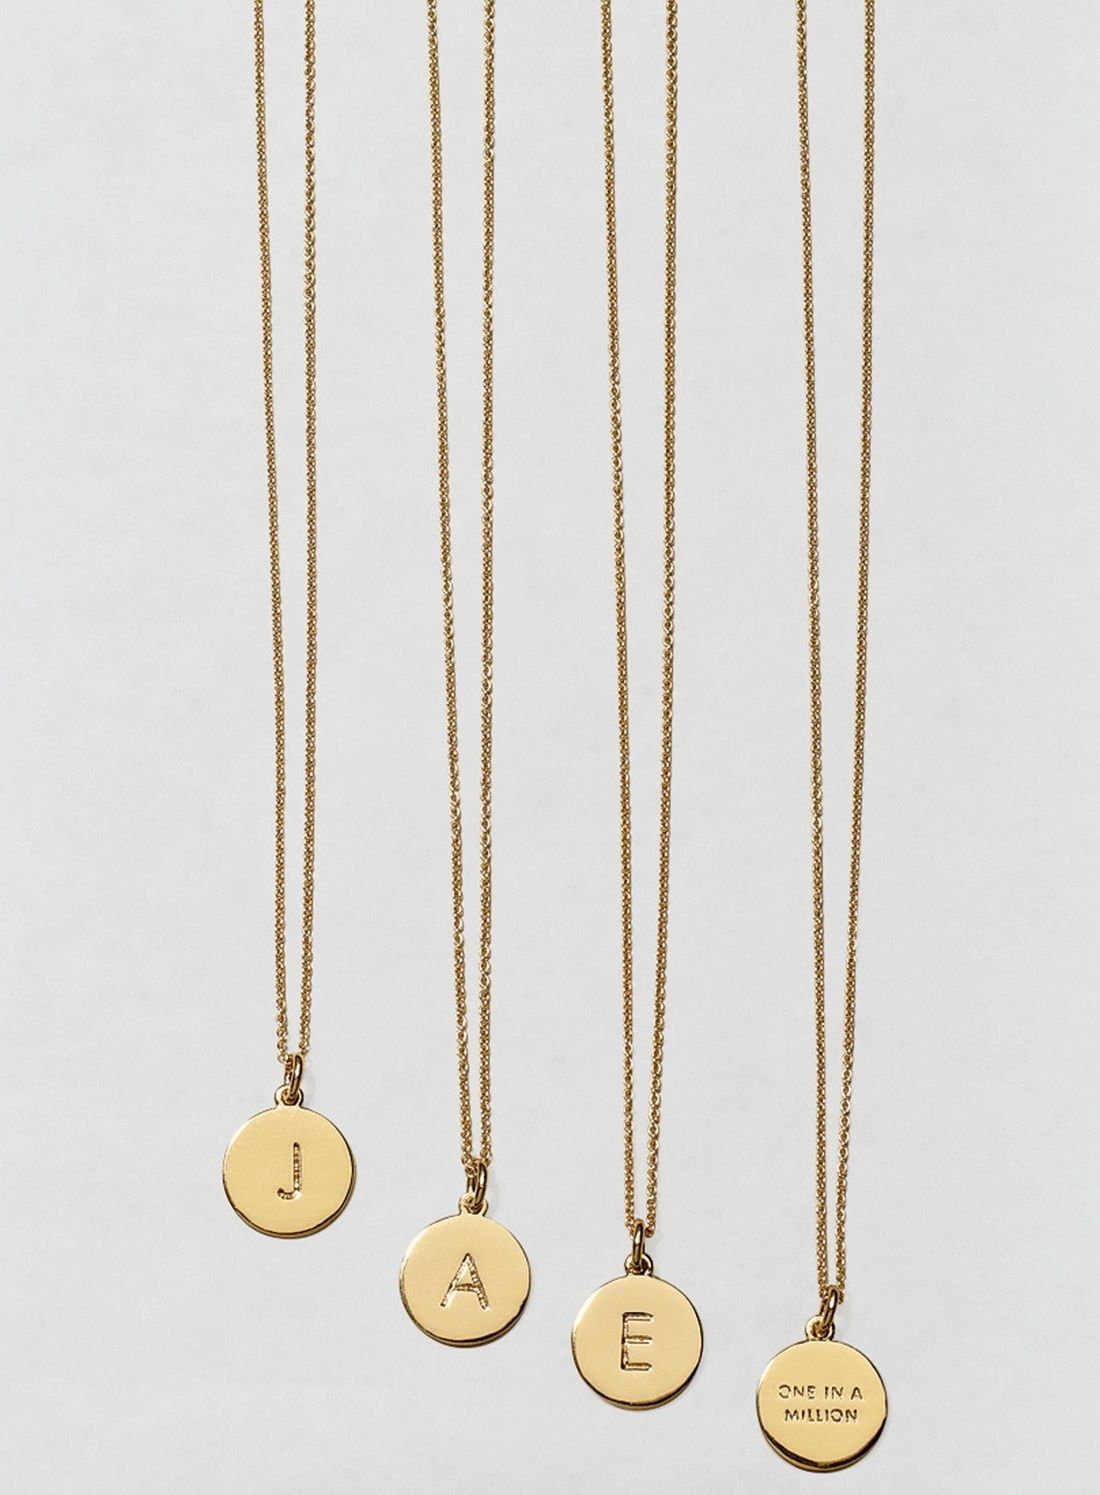 One in a millionu initial pendant necklace initials an and dainty